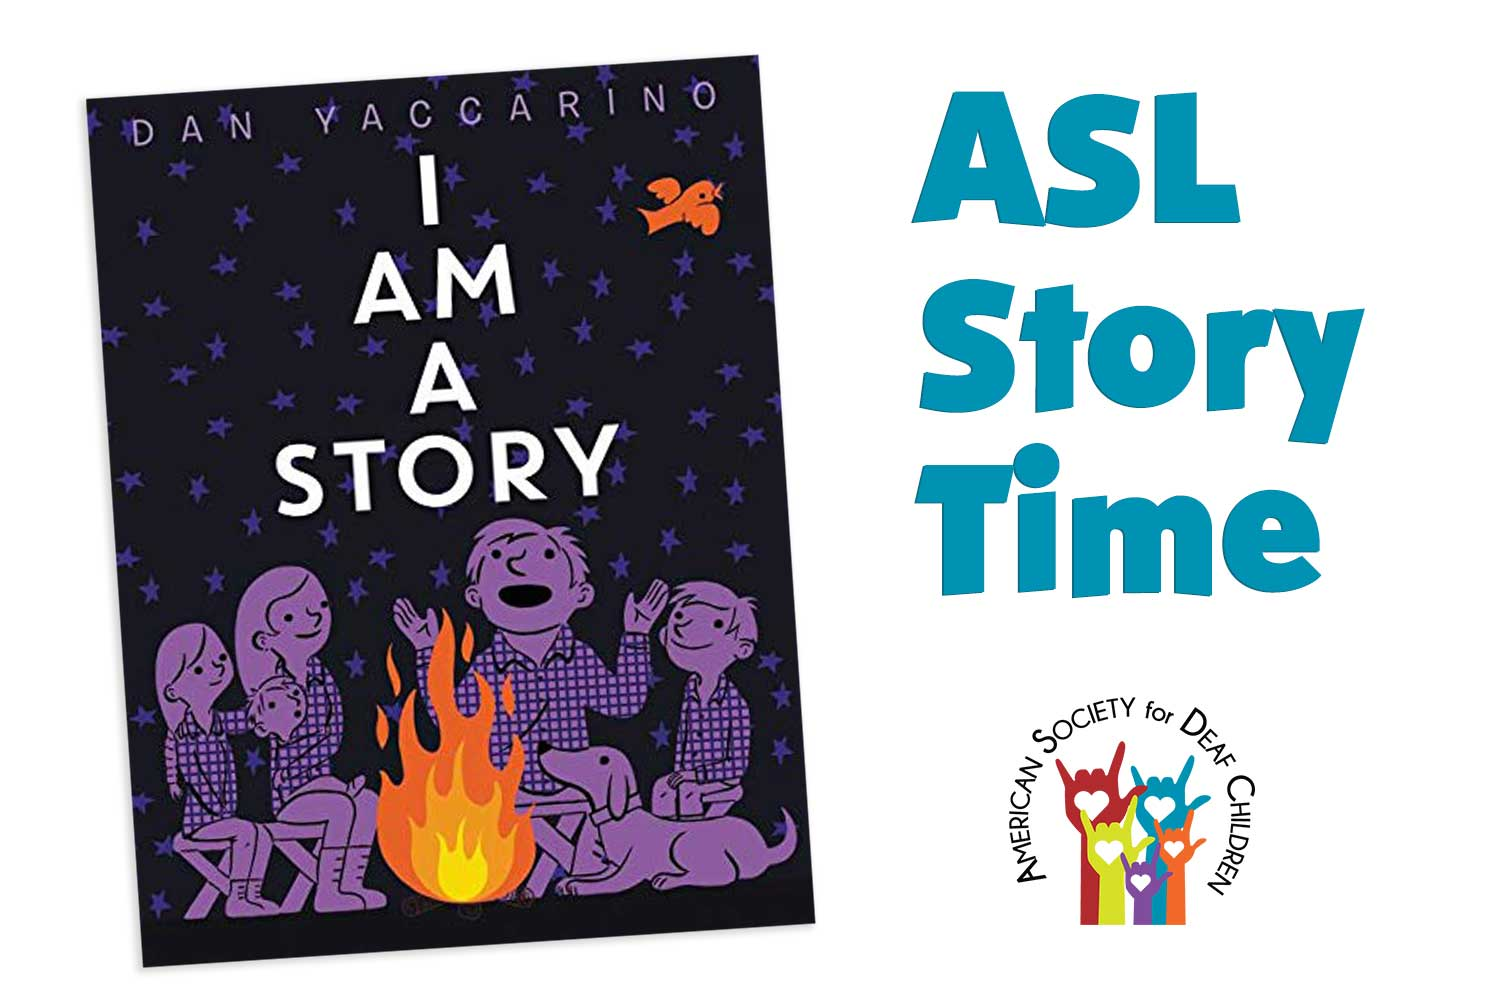 image shows the cover of the book, I Am A Story, with the title and an illustration of people gathered around a campfire